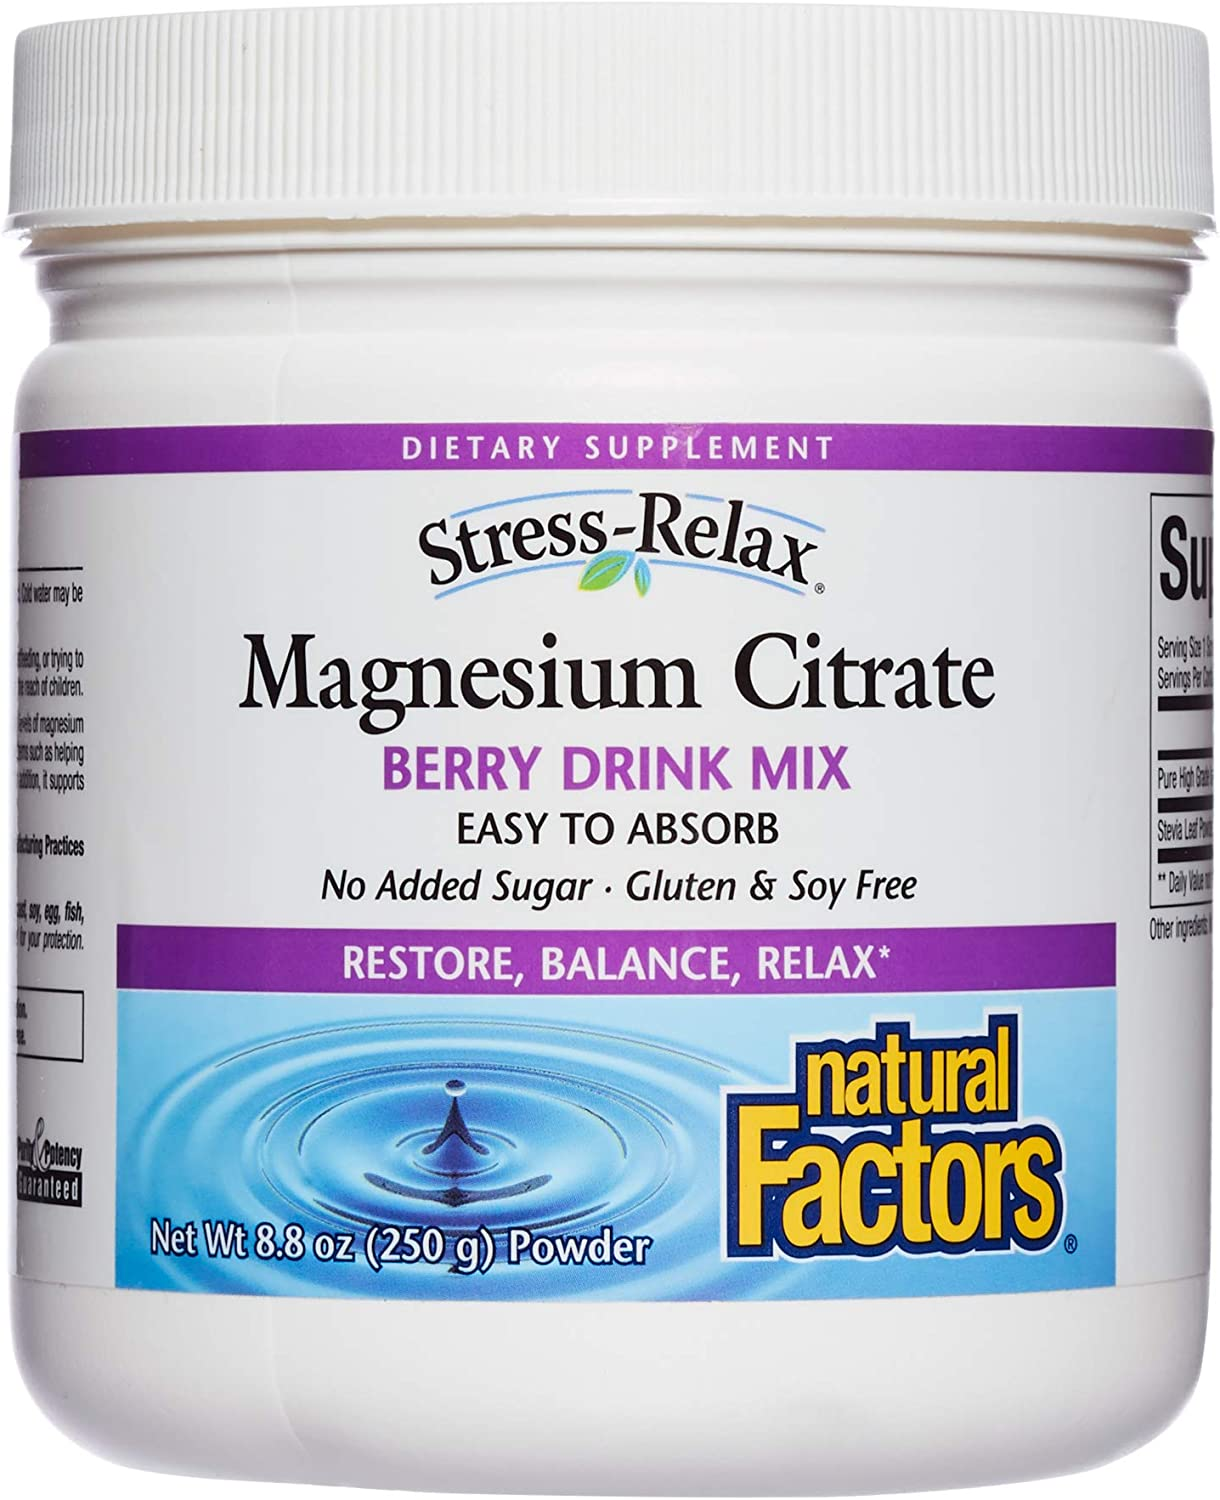 Stress-Relax Magnesium Citrate Drink Mix by Natural Factors, Restores Normal Levels of Magnesium & Balances Calcium Intake, Non-GMO, Berry Flavor, 8.8 oz (75 servings)